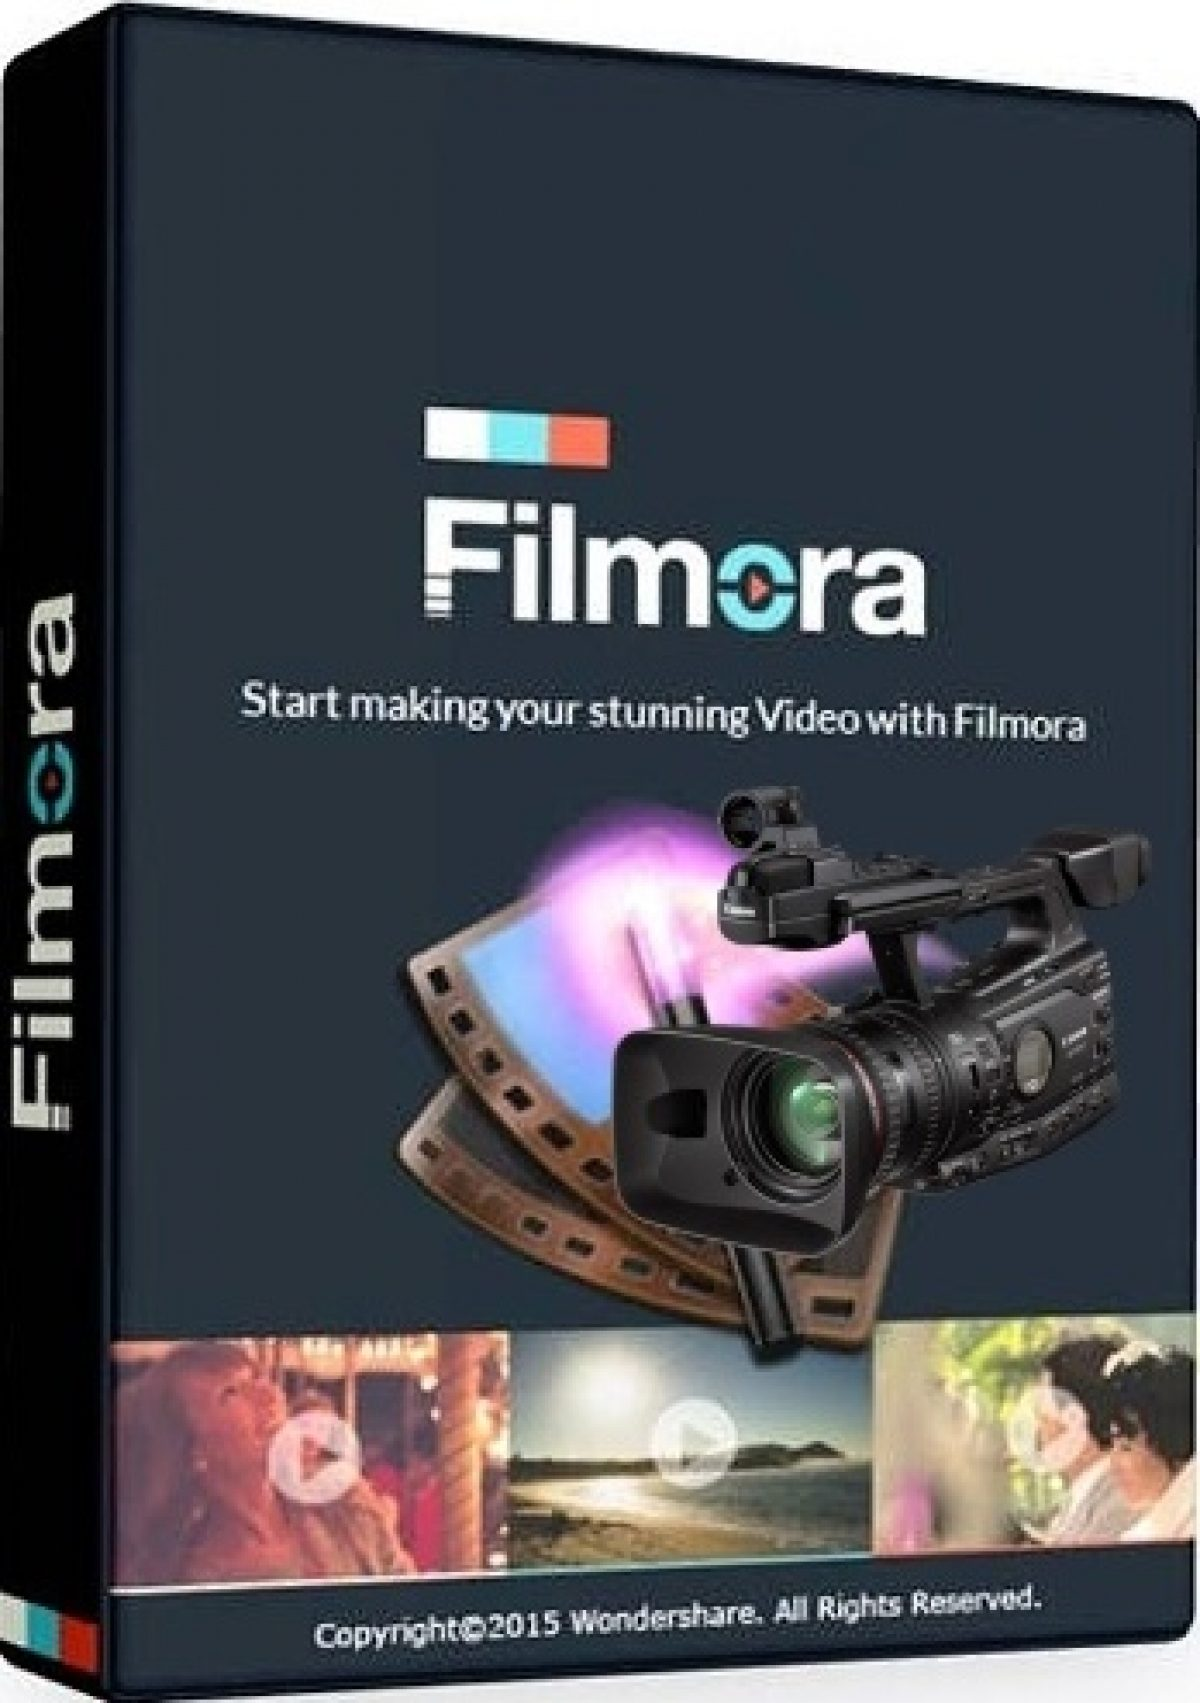 Wondershare Filmora 10.0.0.90 Crack Plus 2020 Product Key Free Download